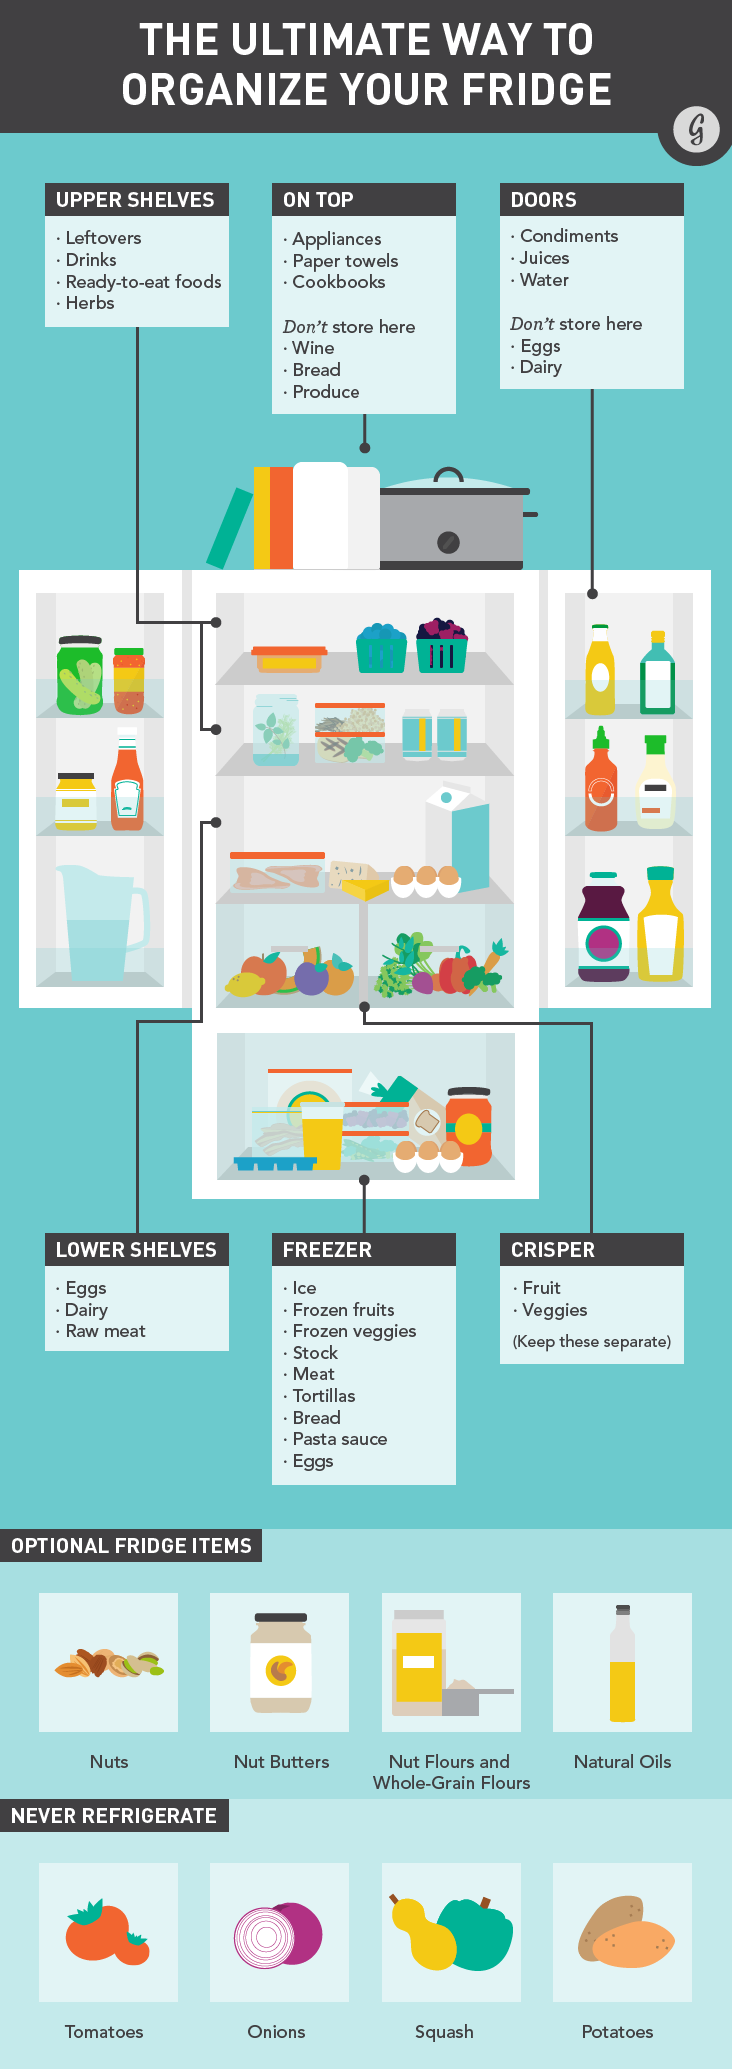 How to Organize Your Fridge to Make Food Taste Better and Last ...